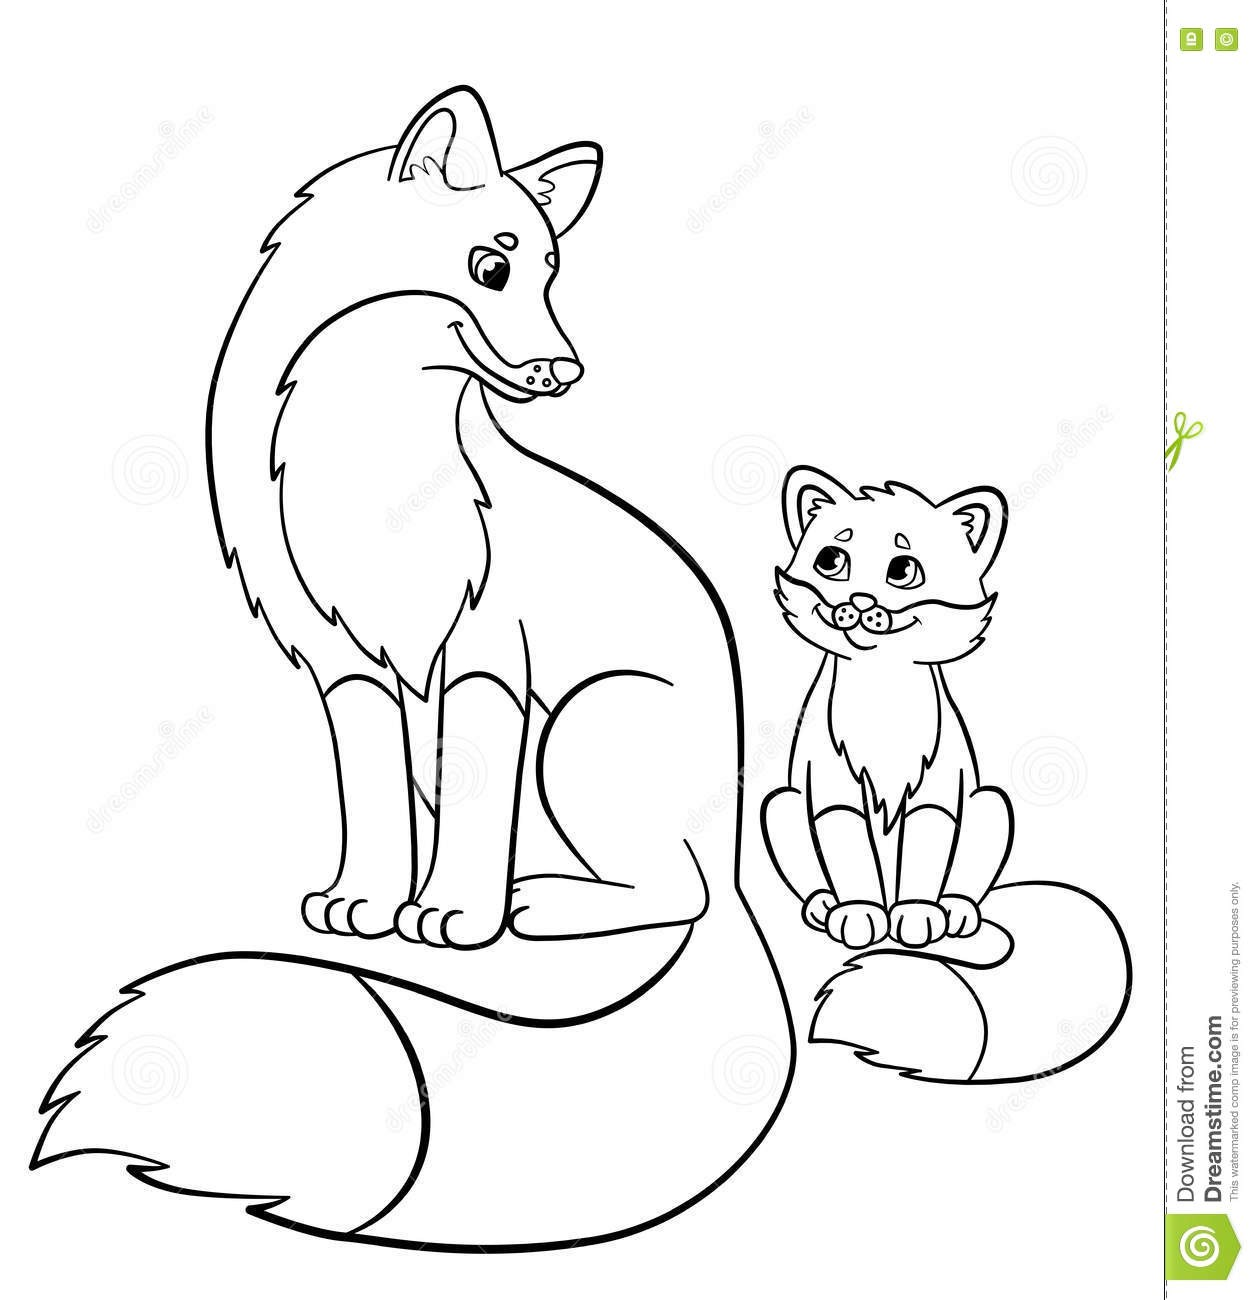 1254x1300 Powerful Fox Coloring Pages For Preschoolers Free Printable Kids